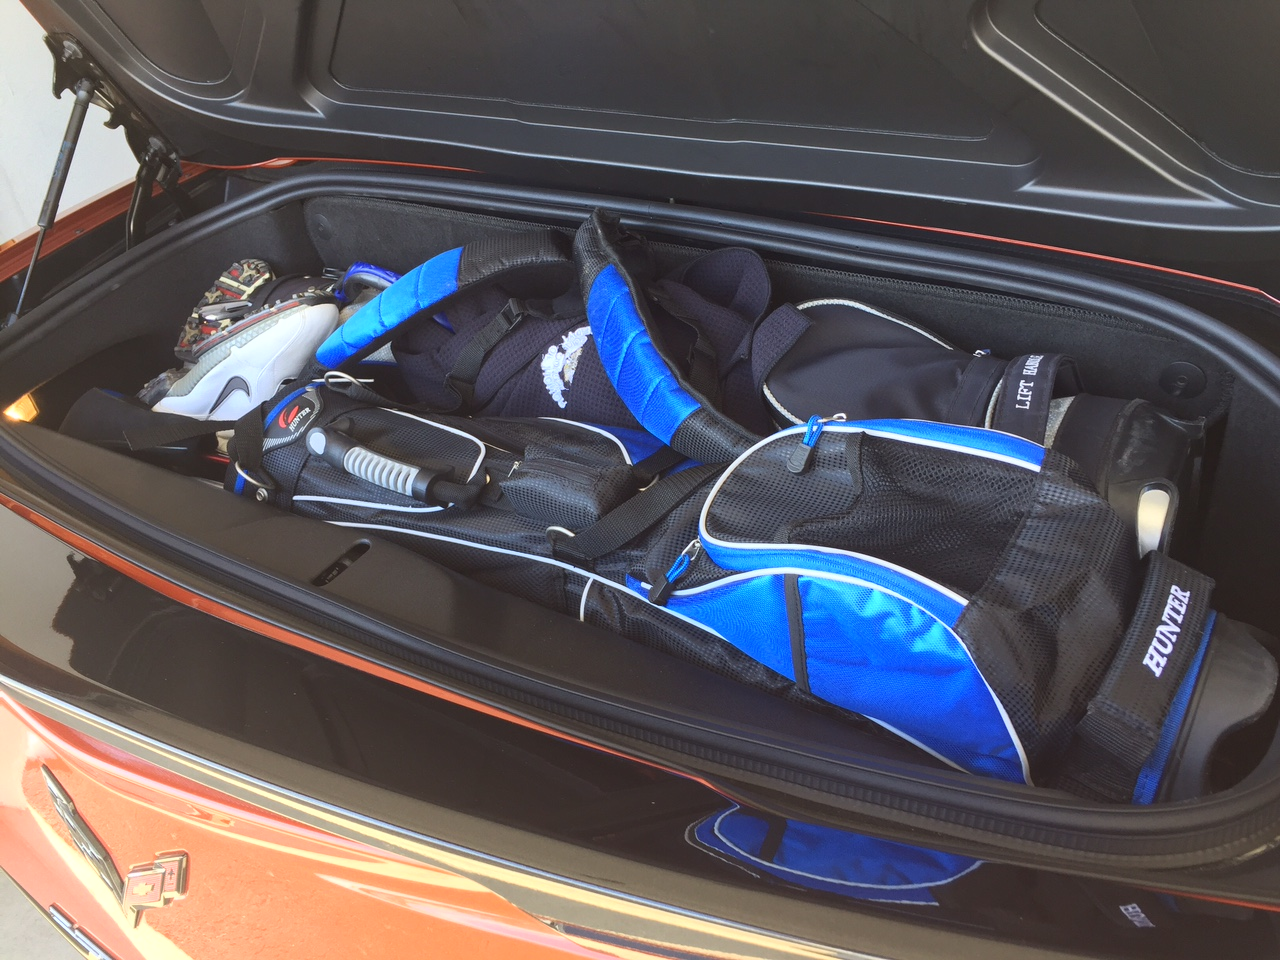 C7 Convertible Trunk Space Enough Room For 2 Golf Bags Yesssss